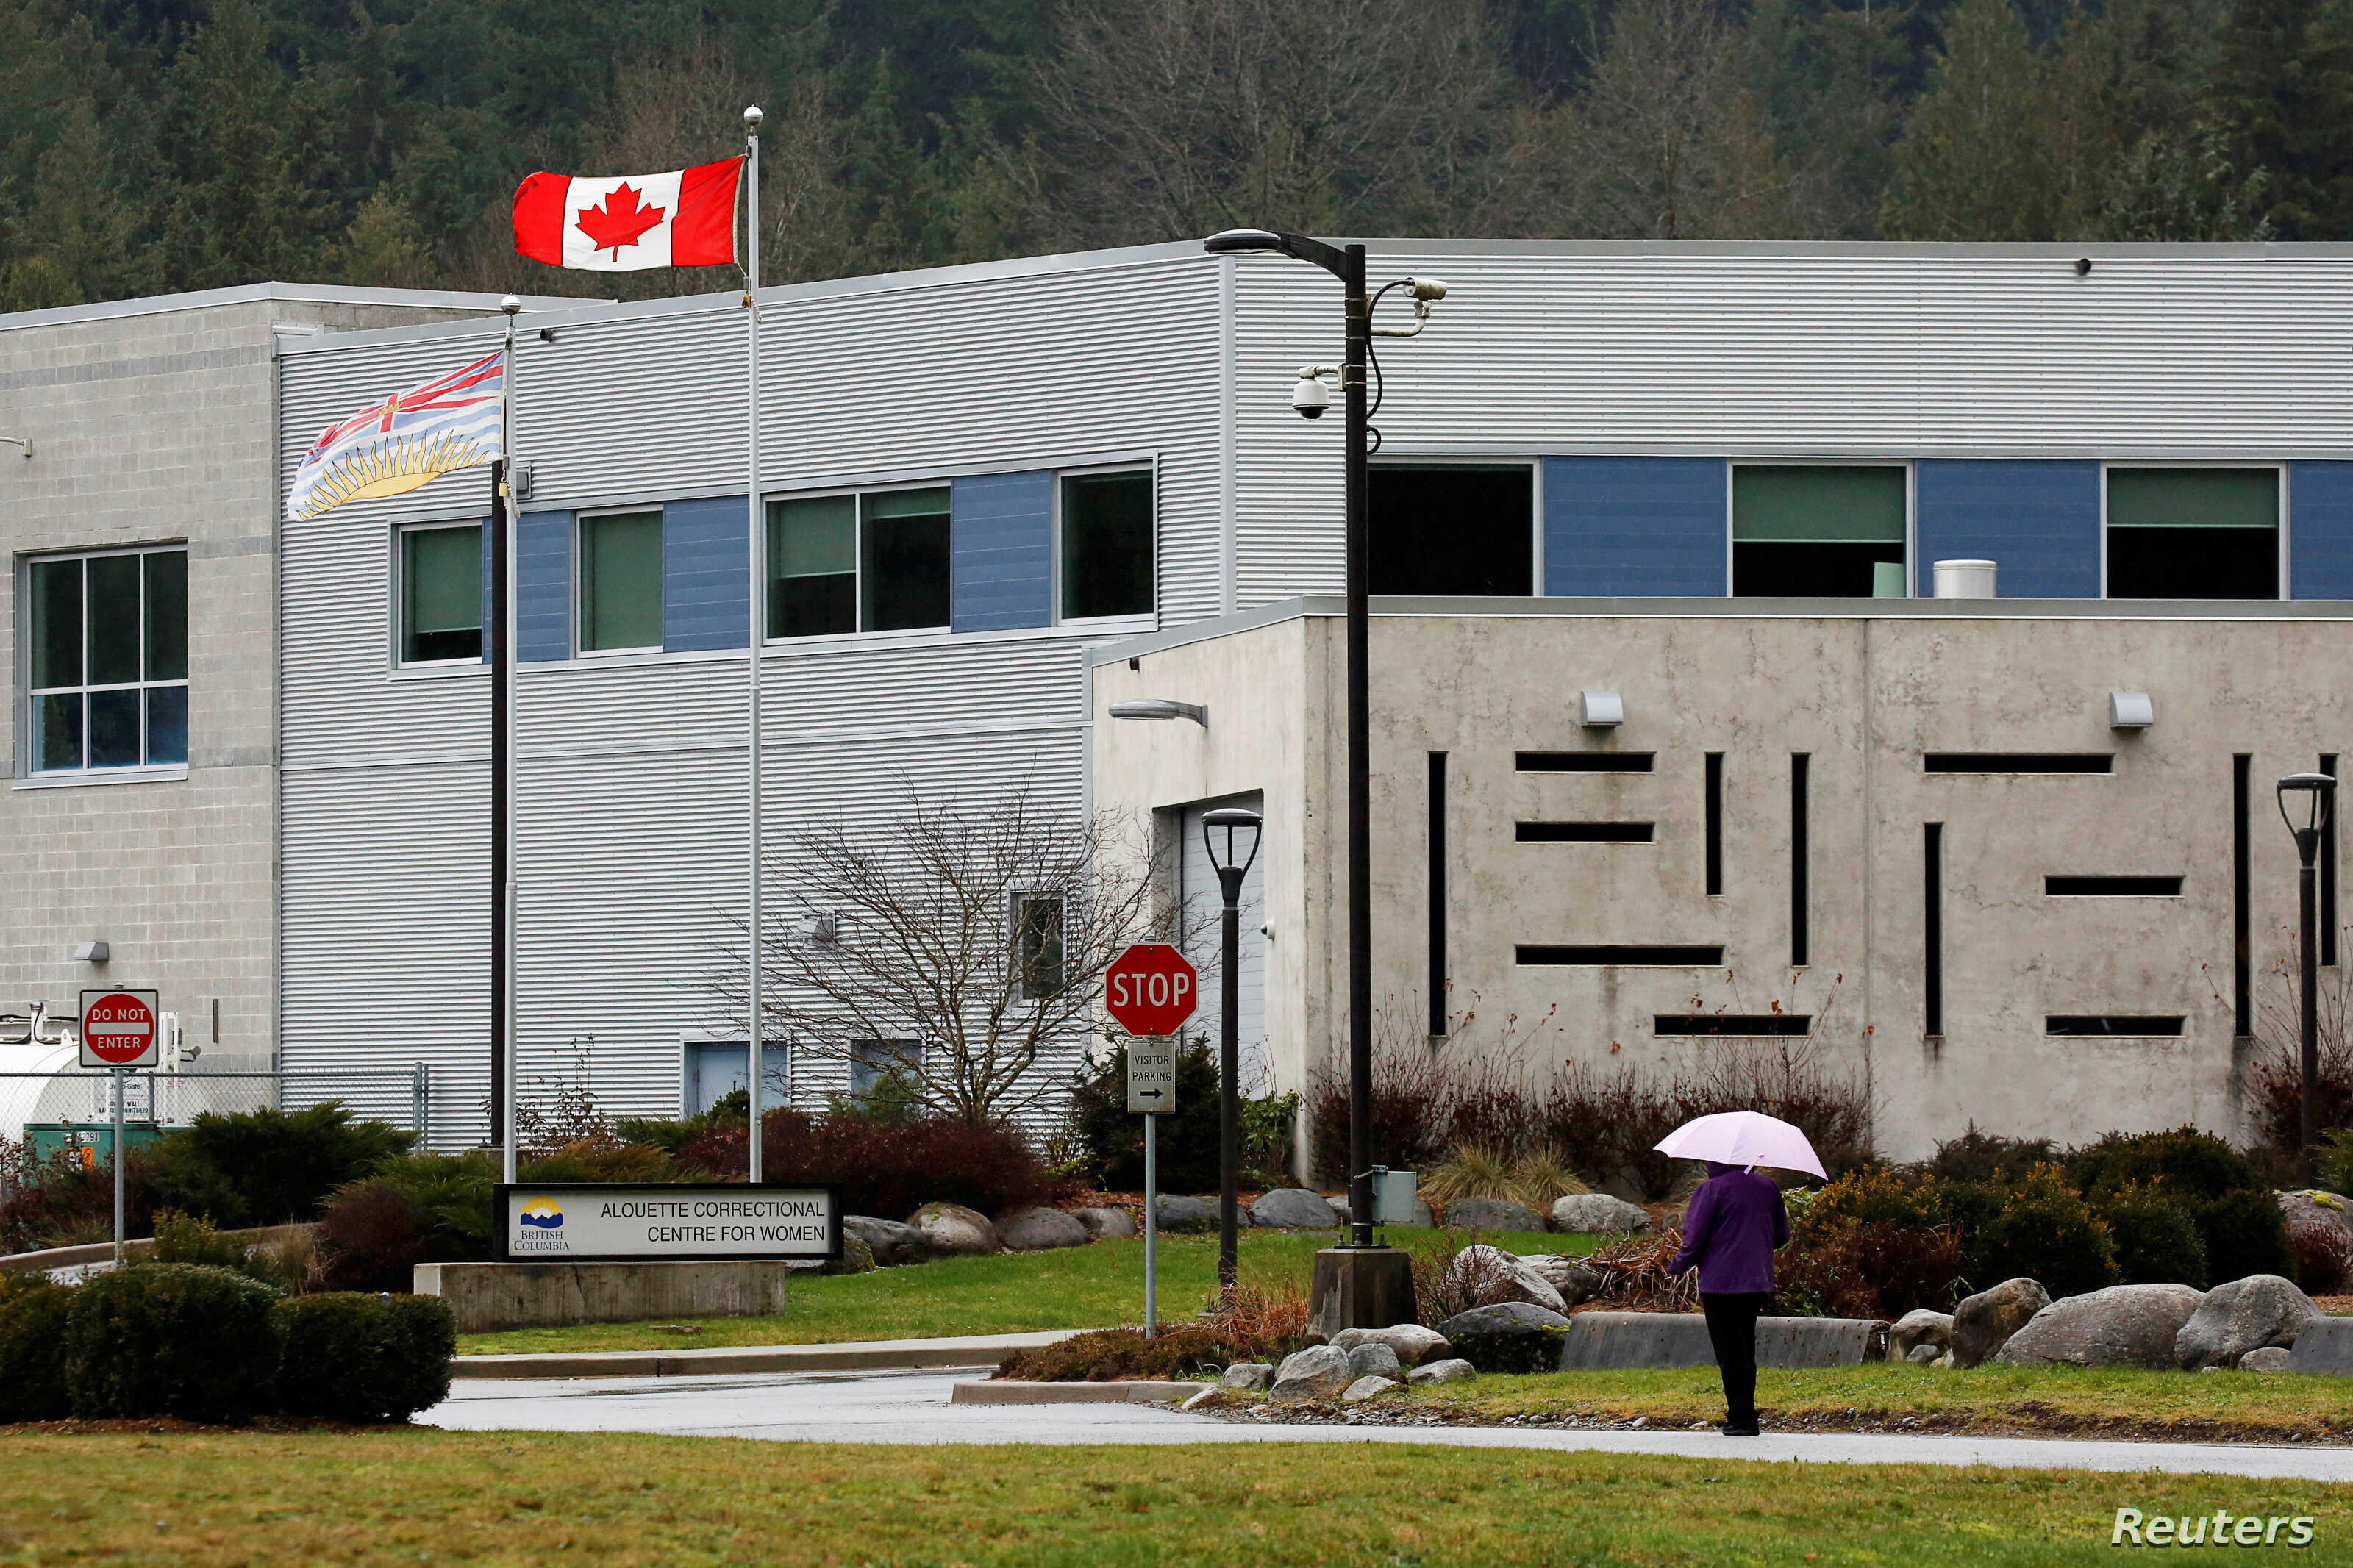 The exterior of the Alouette Correctional Center for Women, where Huawei CFO Meng Wanzhou was being held on an extradition warrant, is seen in Maple Ridge, British Columbia, Canada, Dec. 8, 2018.